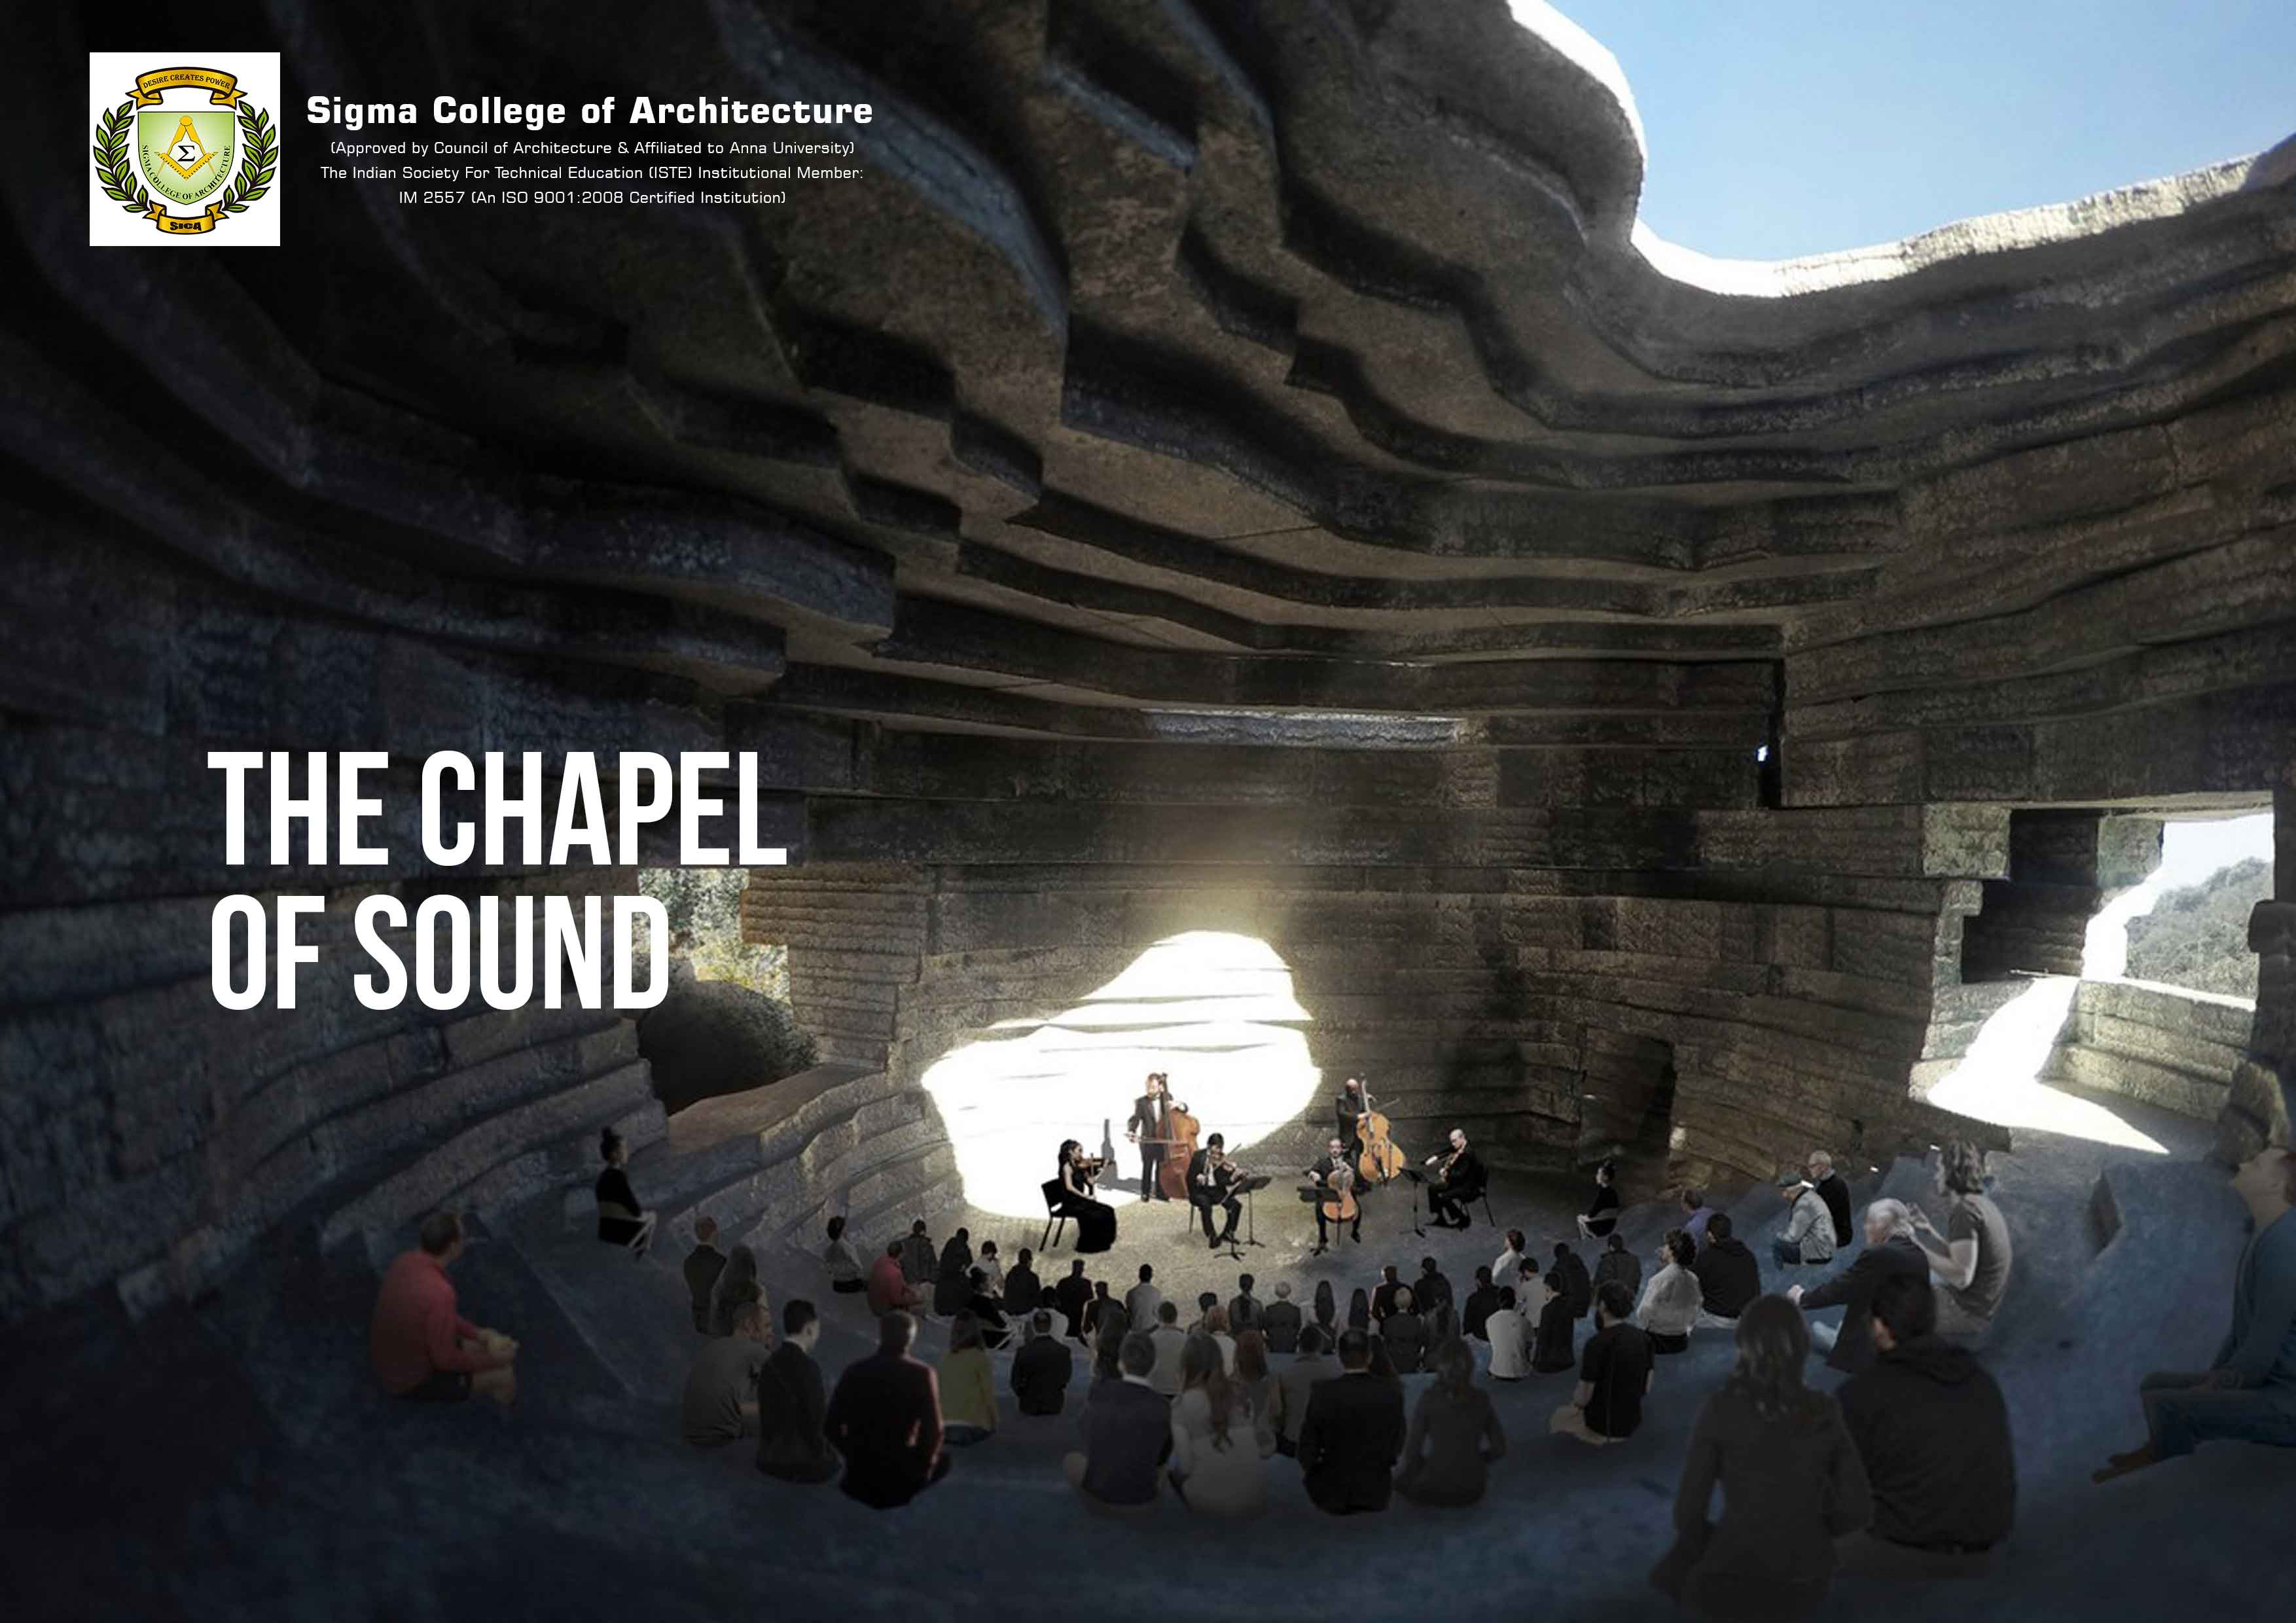 The Chapel of Sound